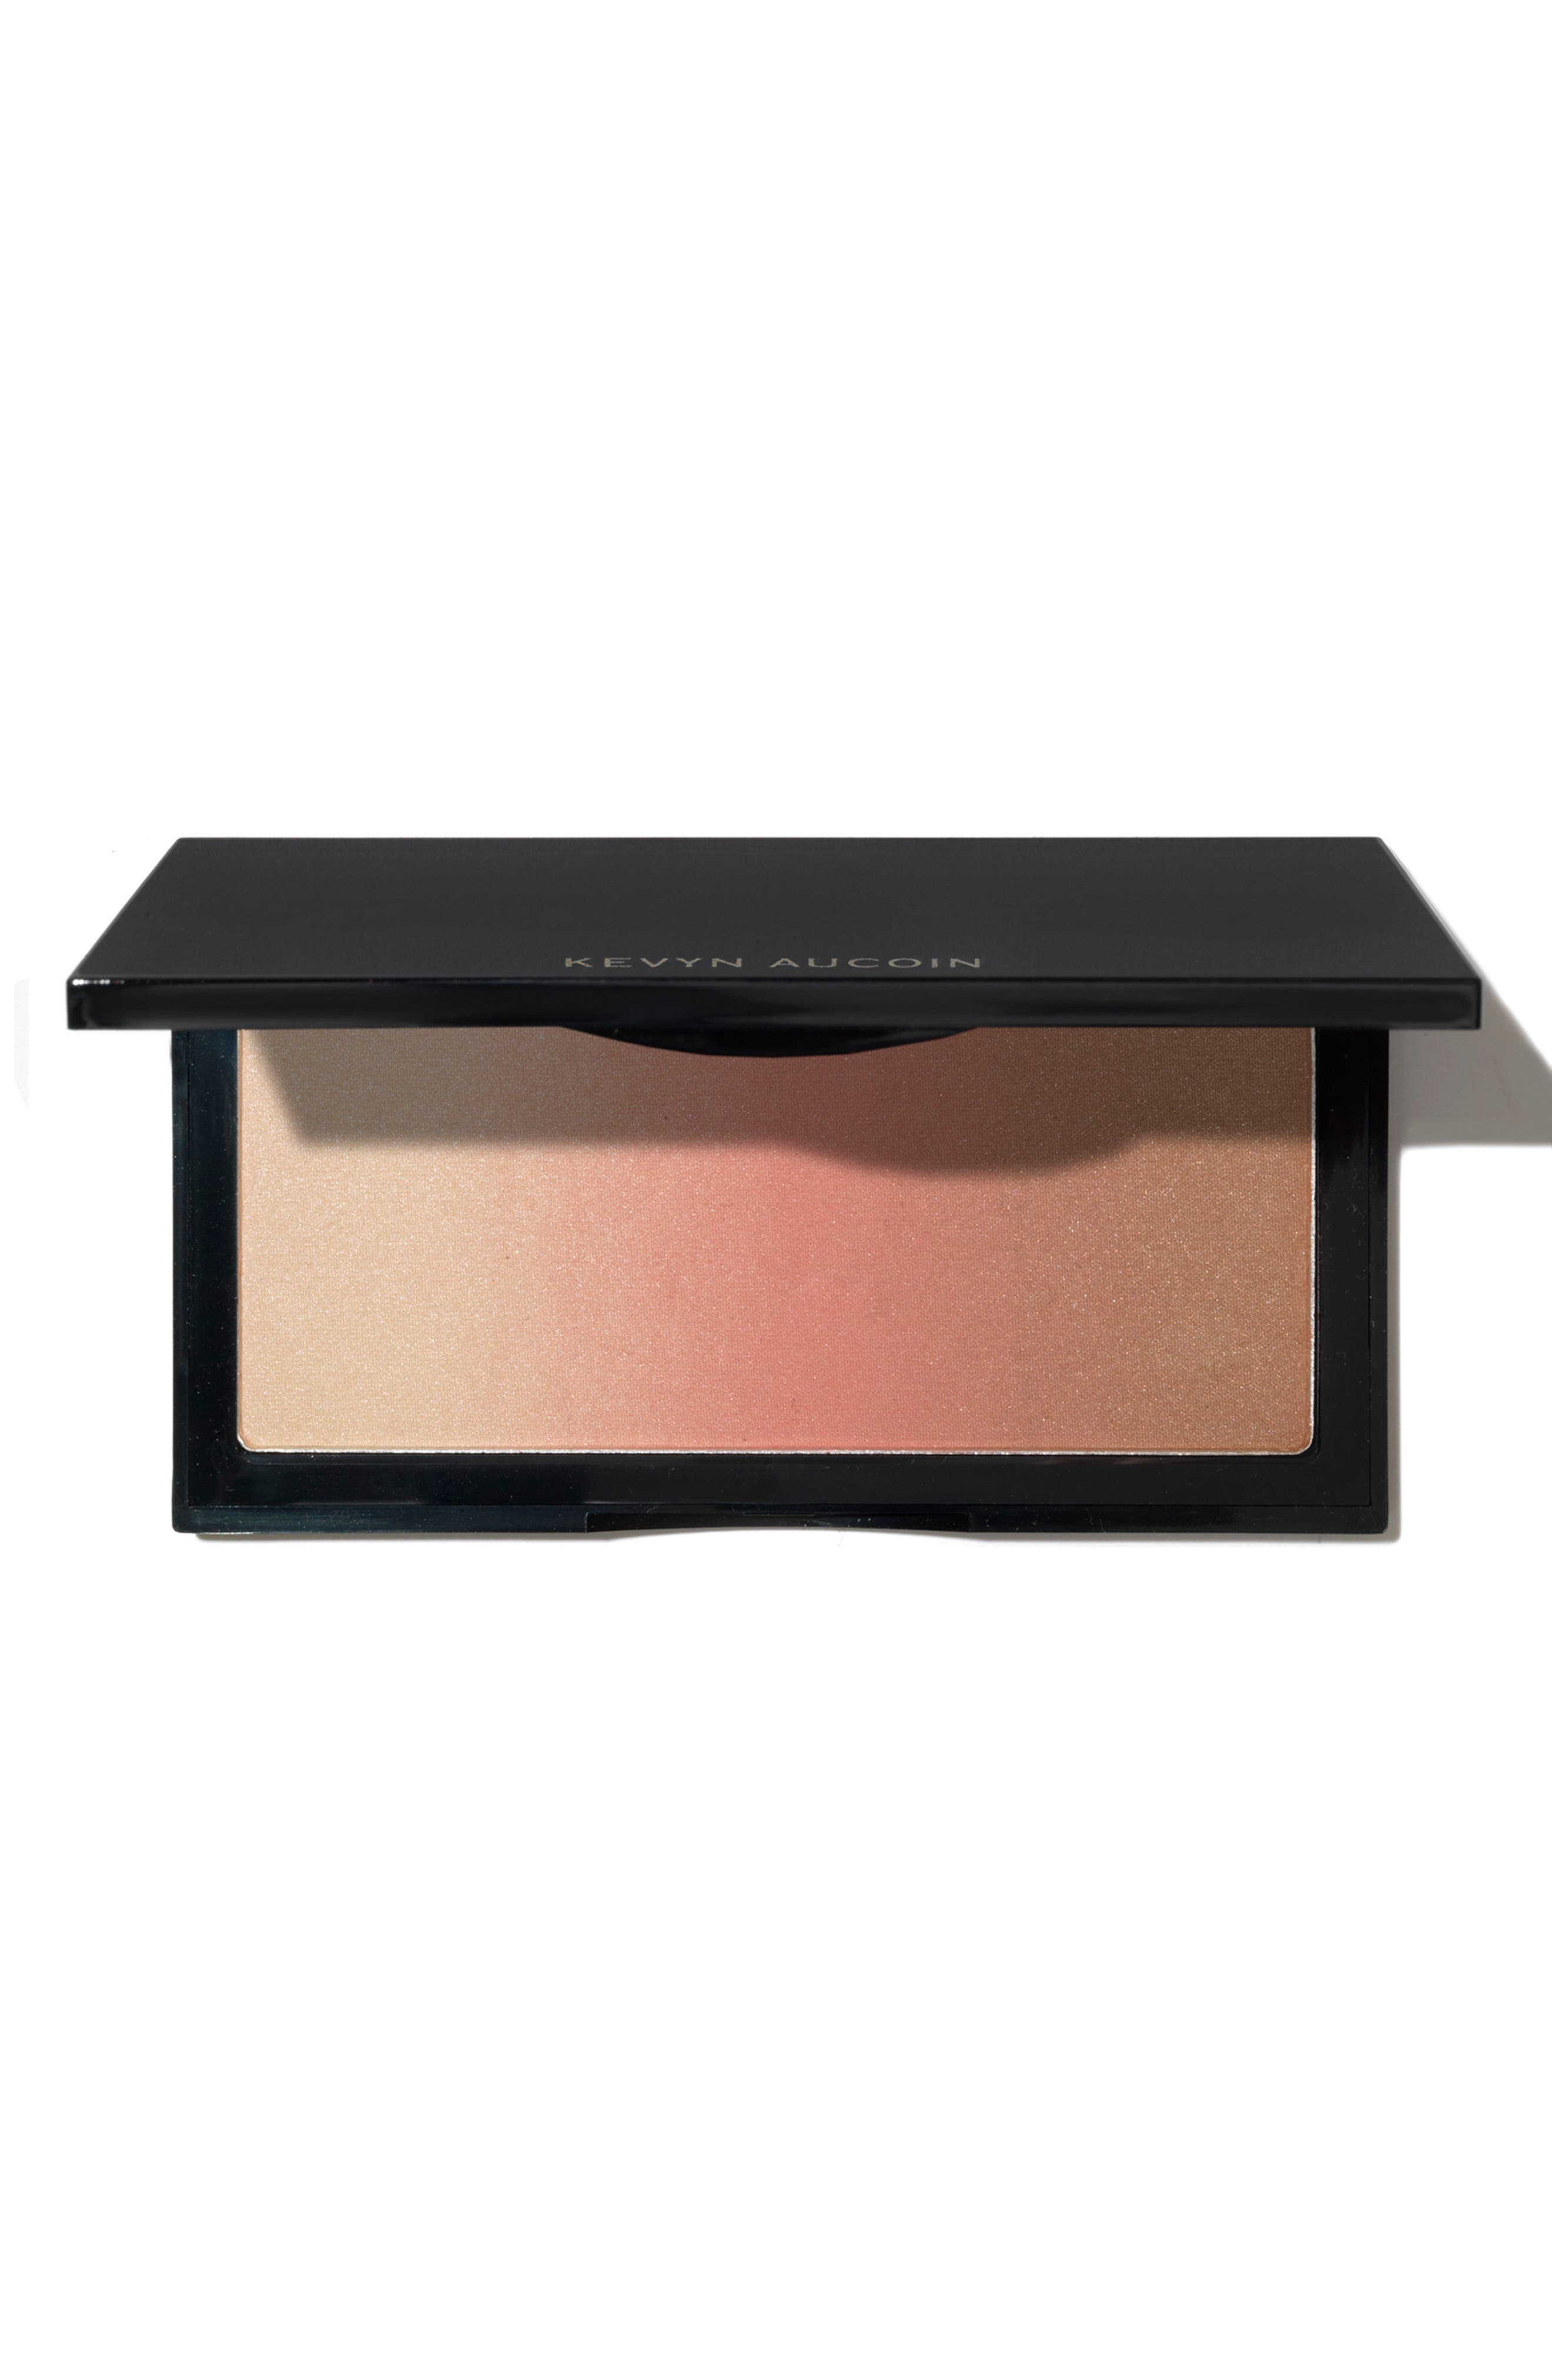 SPACE.NK.apothecary Kevyn Aucoin Beauty The Neo-Bronzer Face Palette,                             Main thumbnail 1, color,                             CAPRI/ COOL PINK